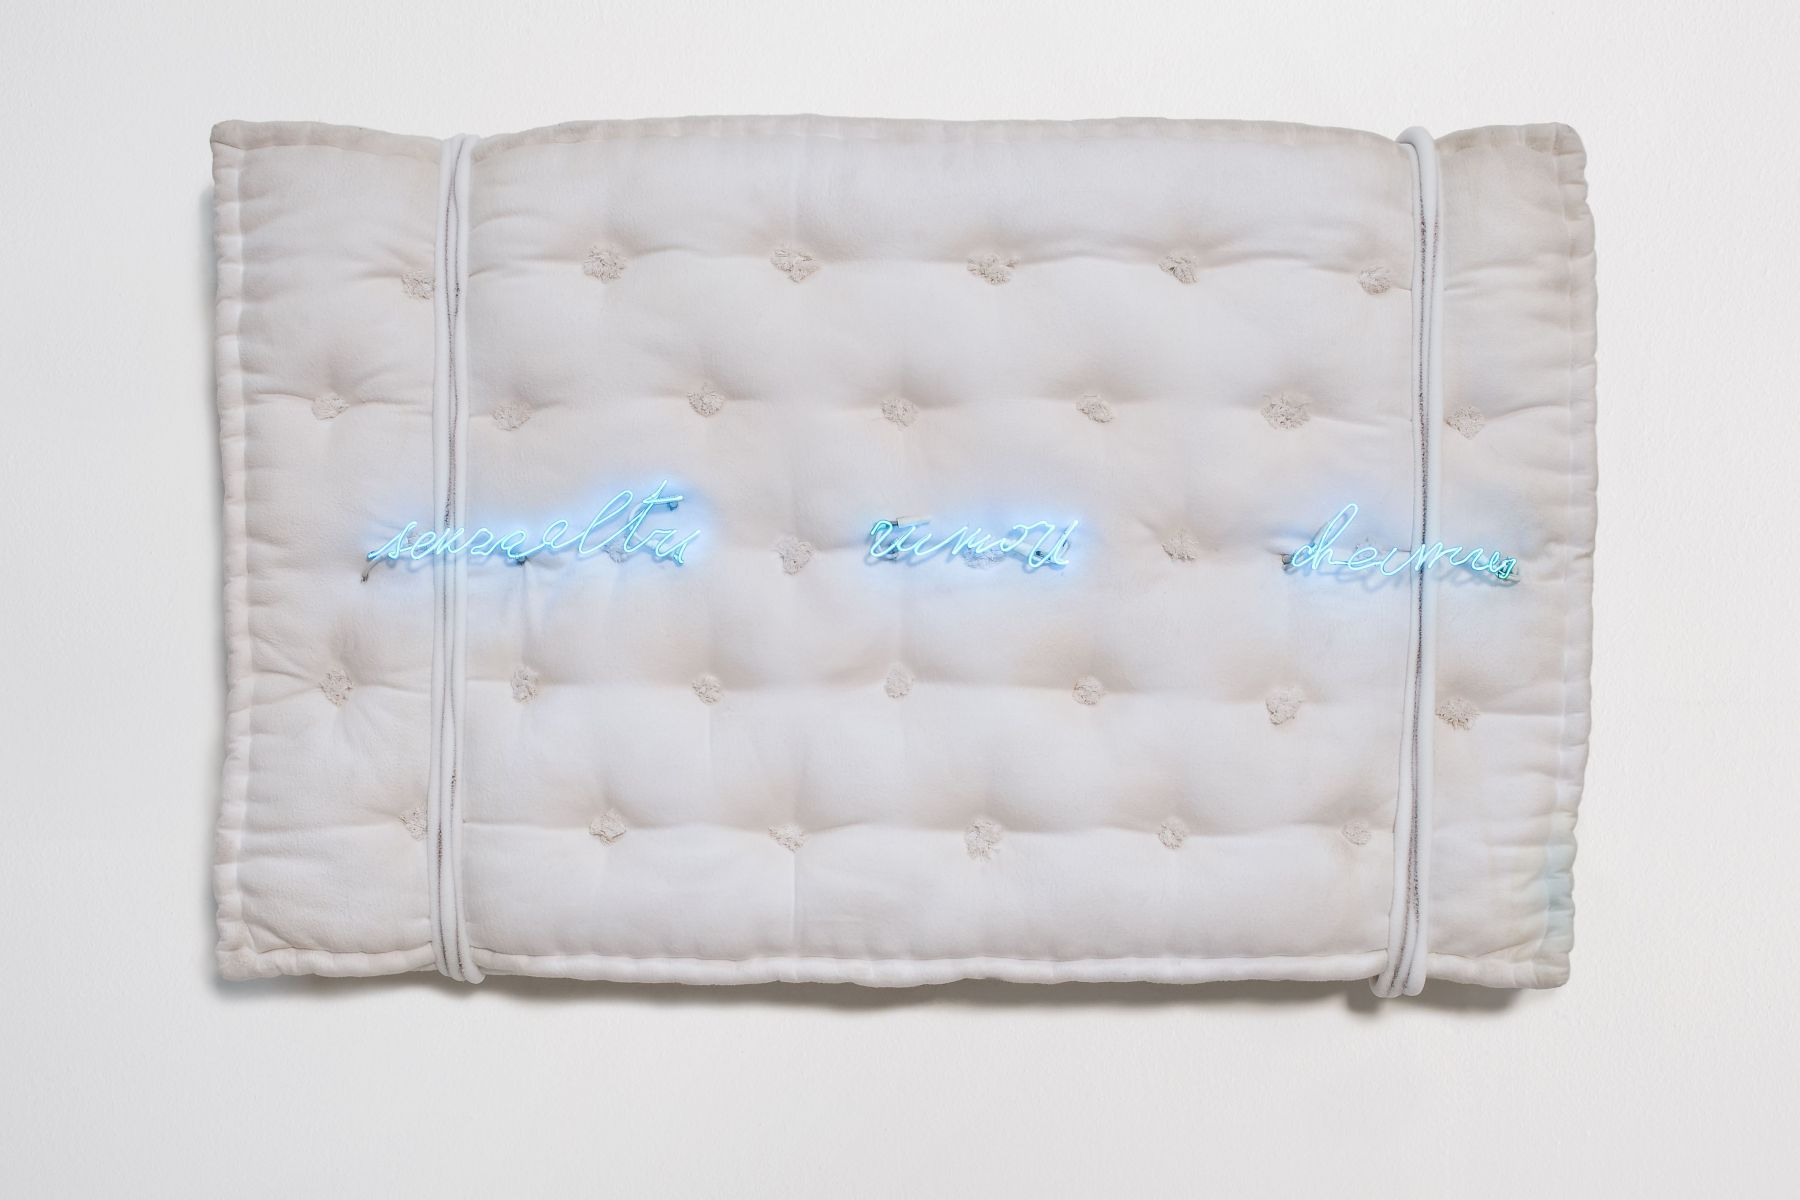 mattress with neon letters by pier paolo calzolari